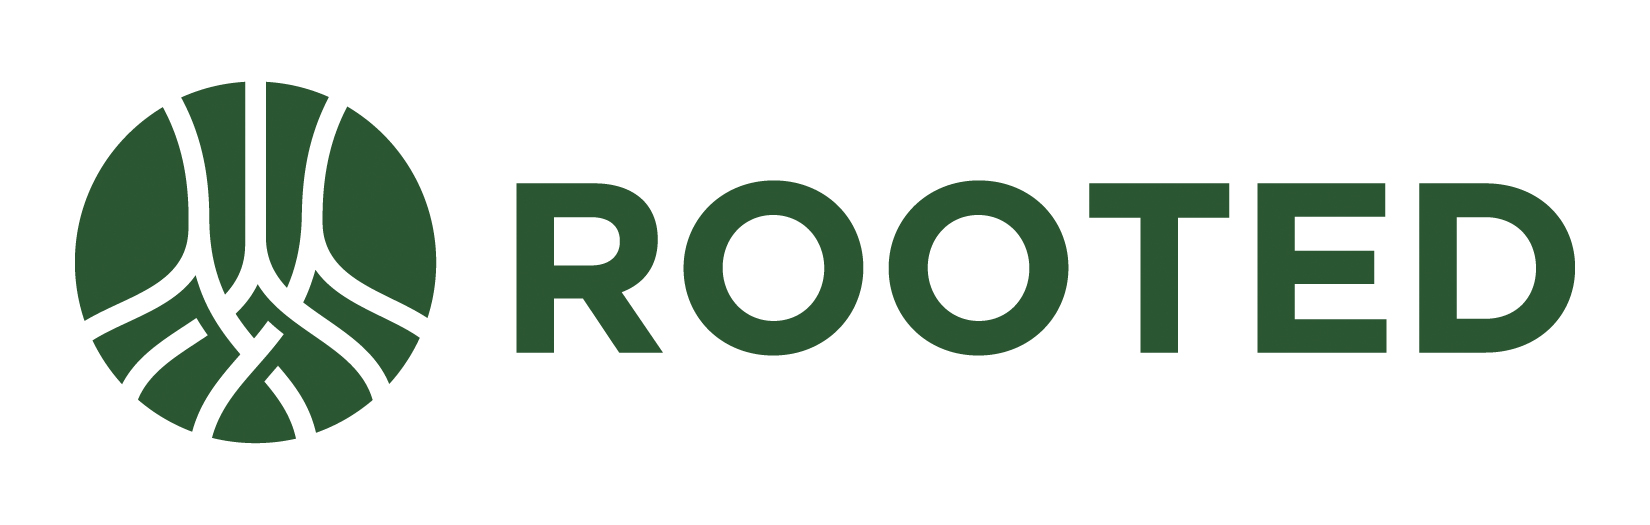 Rooted logo color